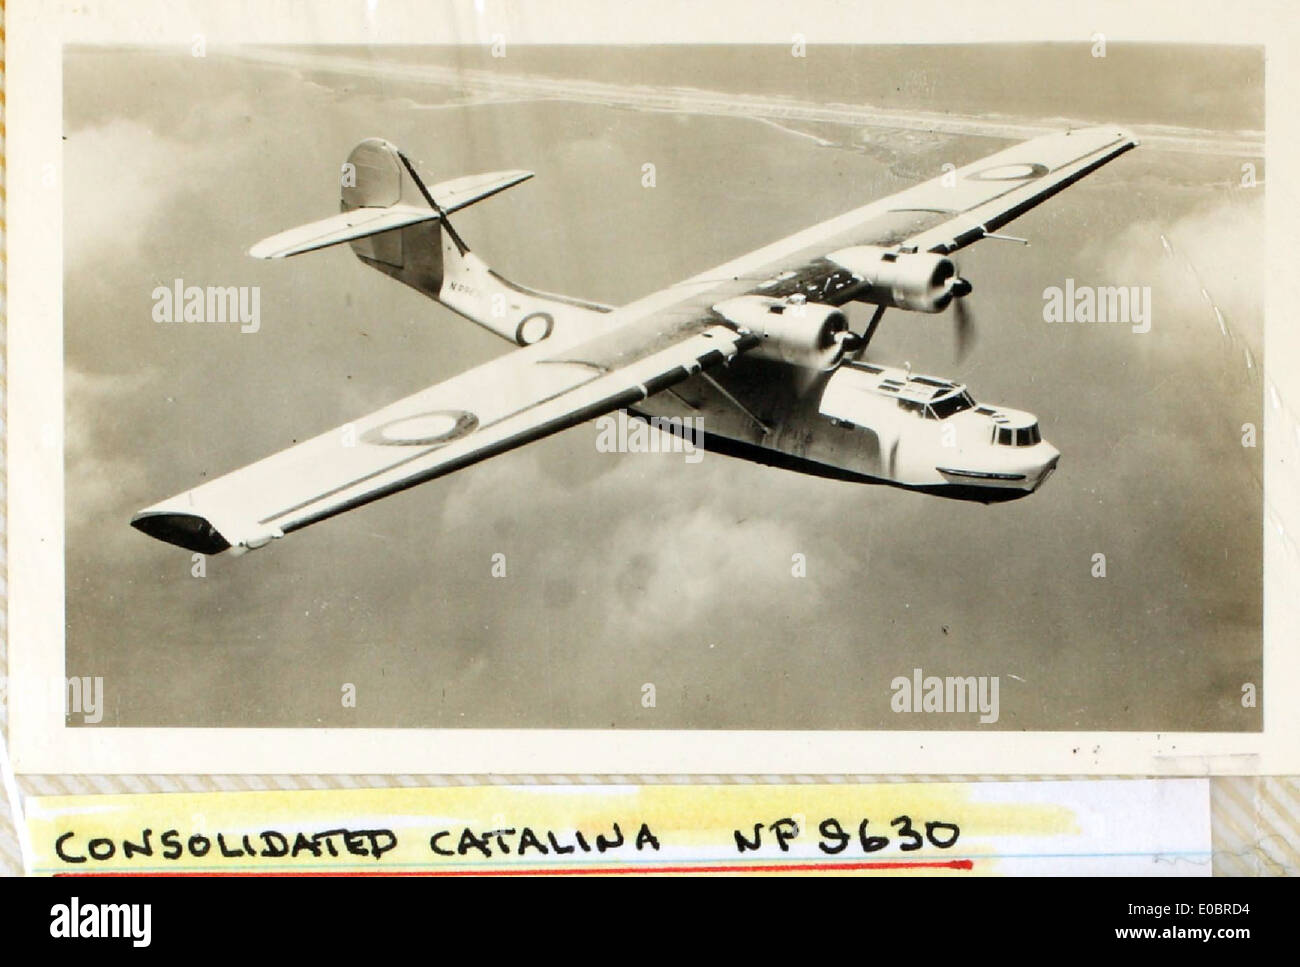 Consolidated, Catalina - Stock Image